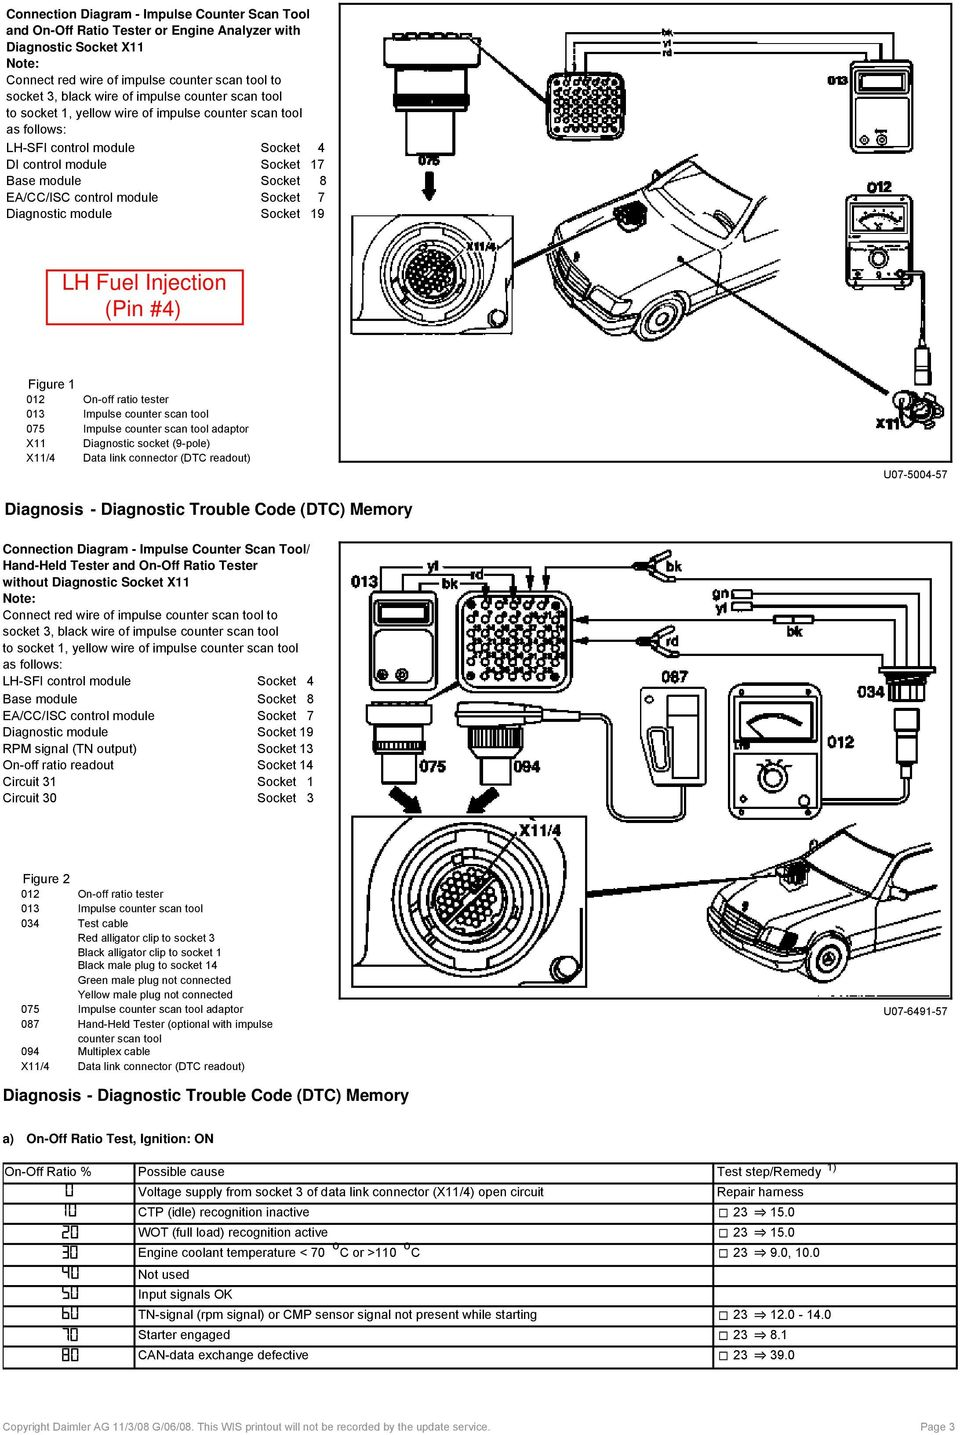 Mercedes Benz Vito Wiring Diagram Freddryer Co